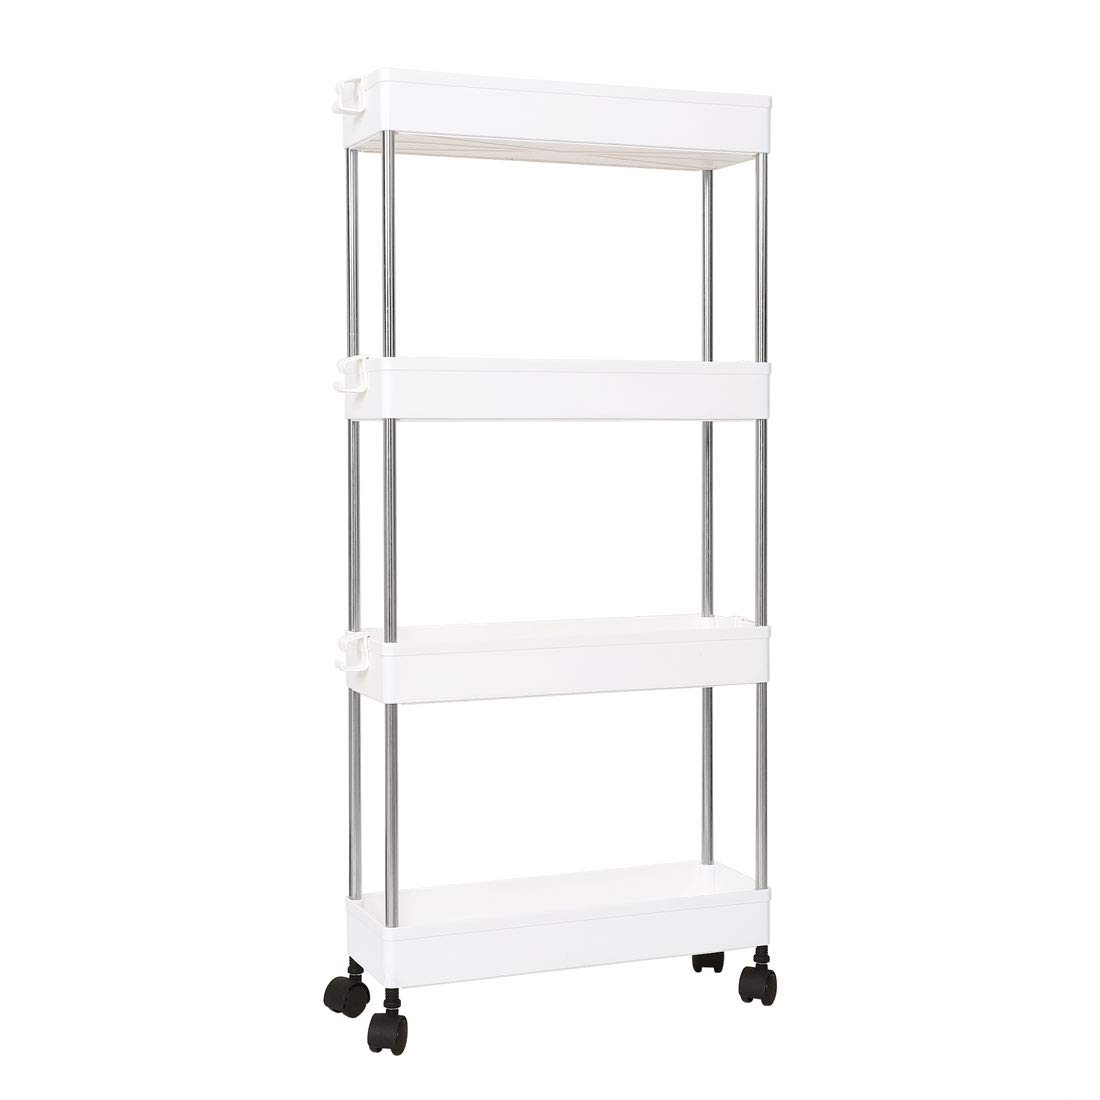 uxcell 4 Tiers Gap Storage Organizer Rack Shelf with Wheels, Slide Out Fridge Storage Tower Rack Slim Gap Storage Cart for Laundry/Bathroom/Kitchen, White